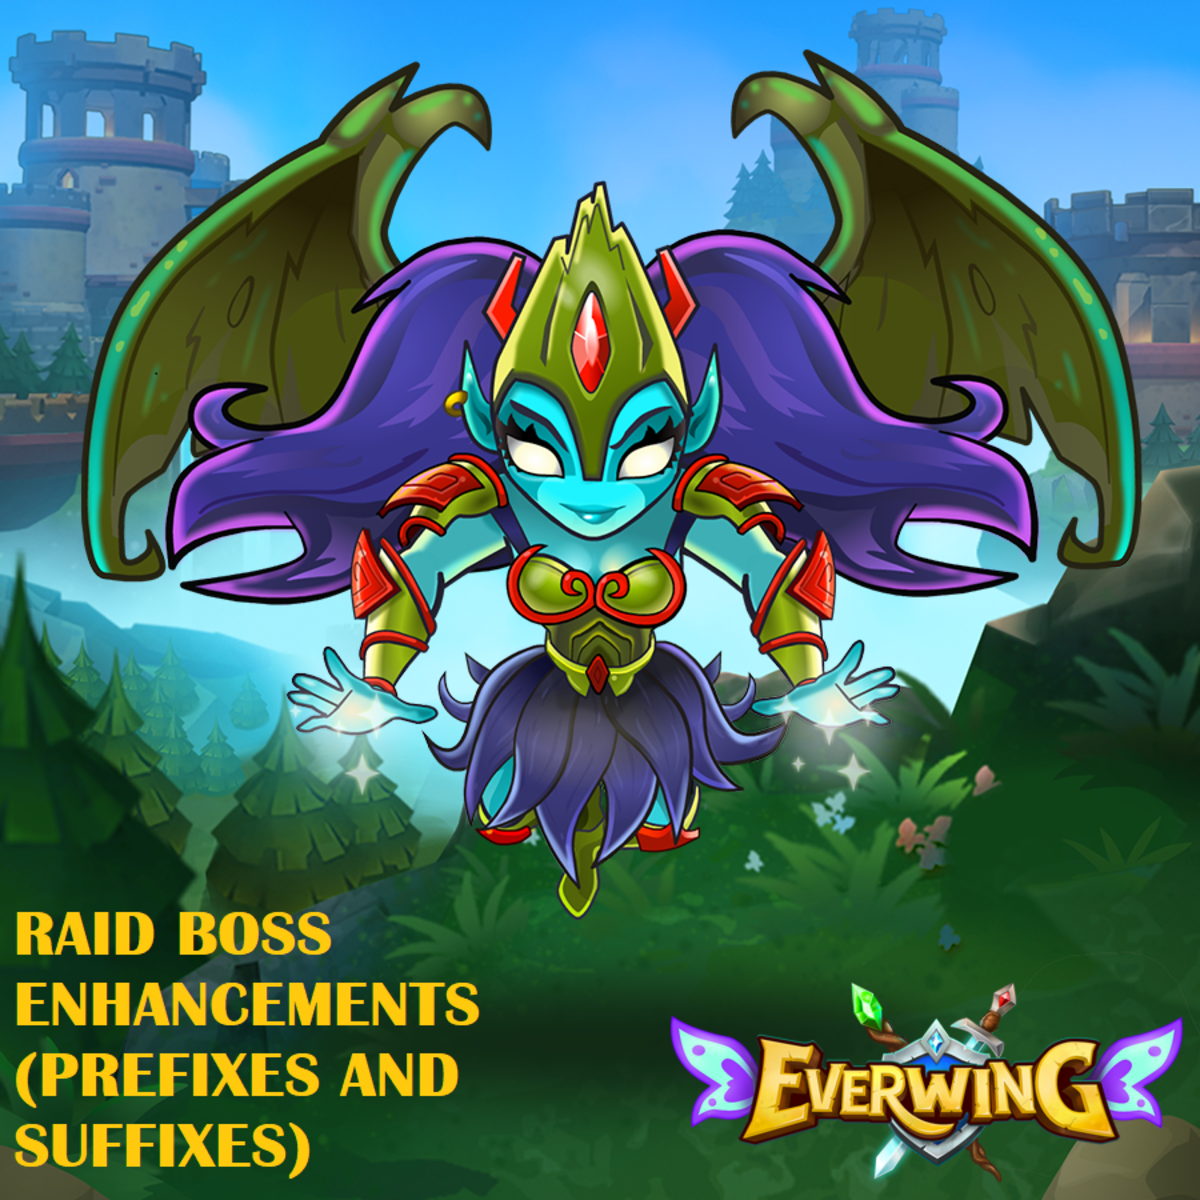 """EverWing"" Raid Boss Enhancements (Prefixes and Suffixes)"